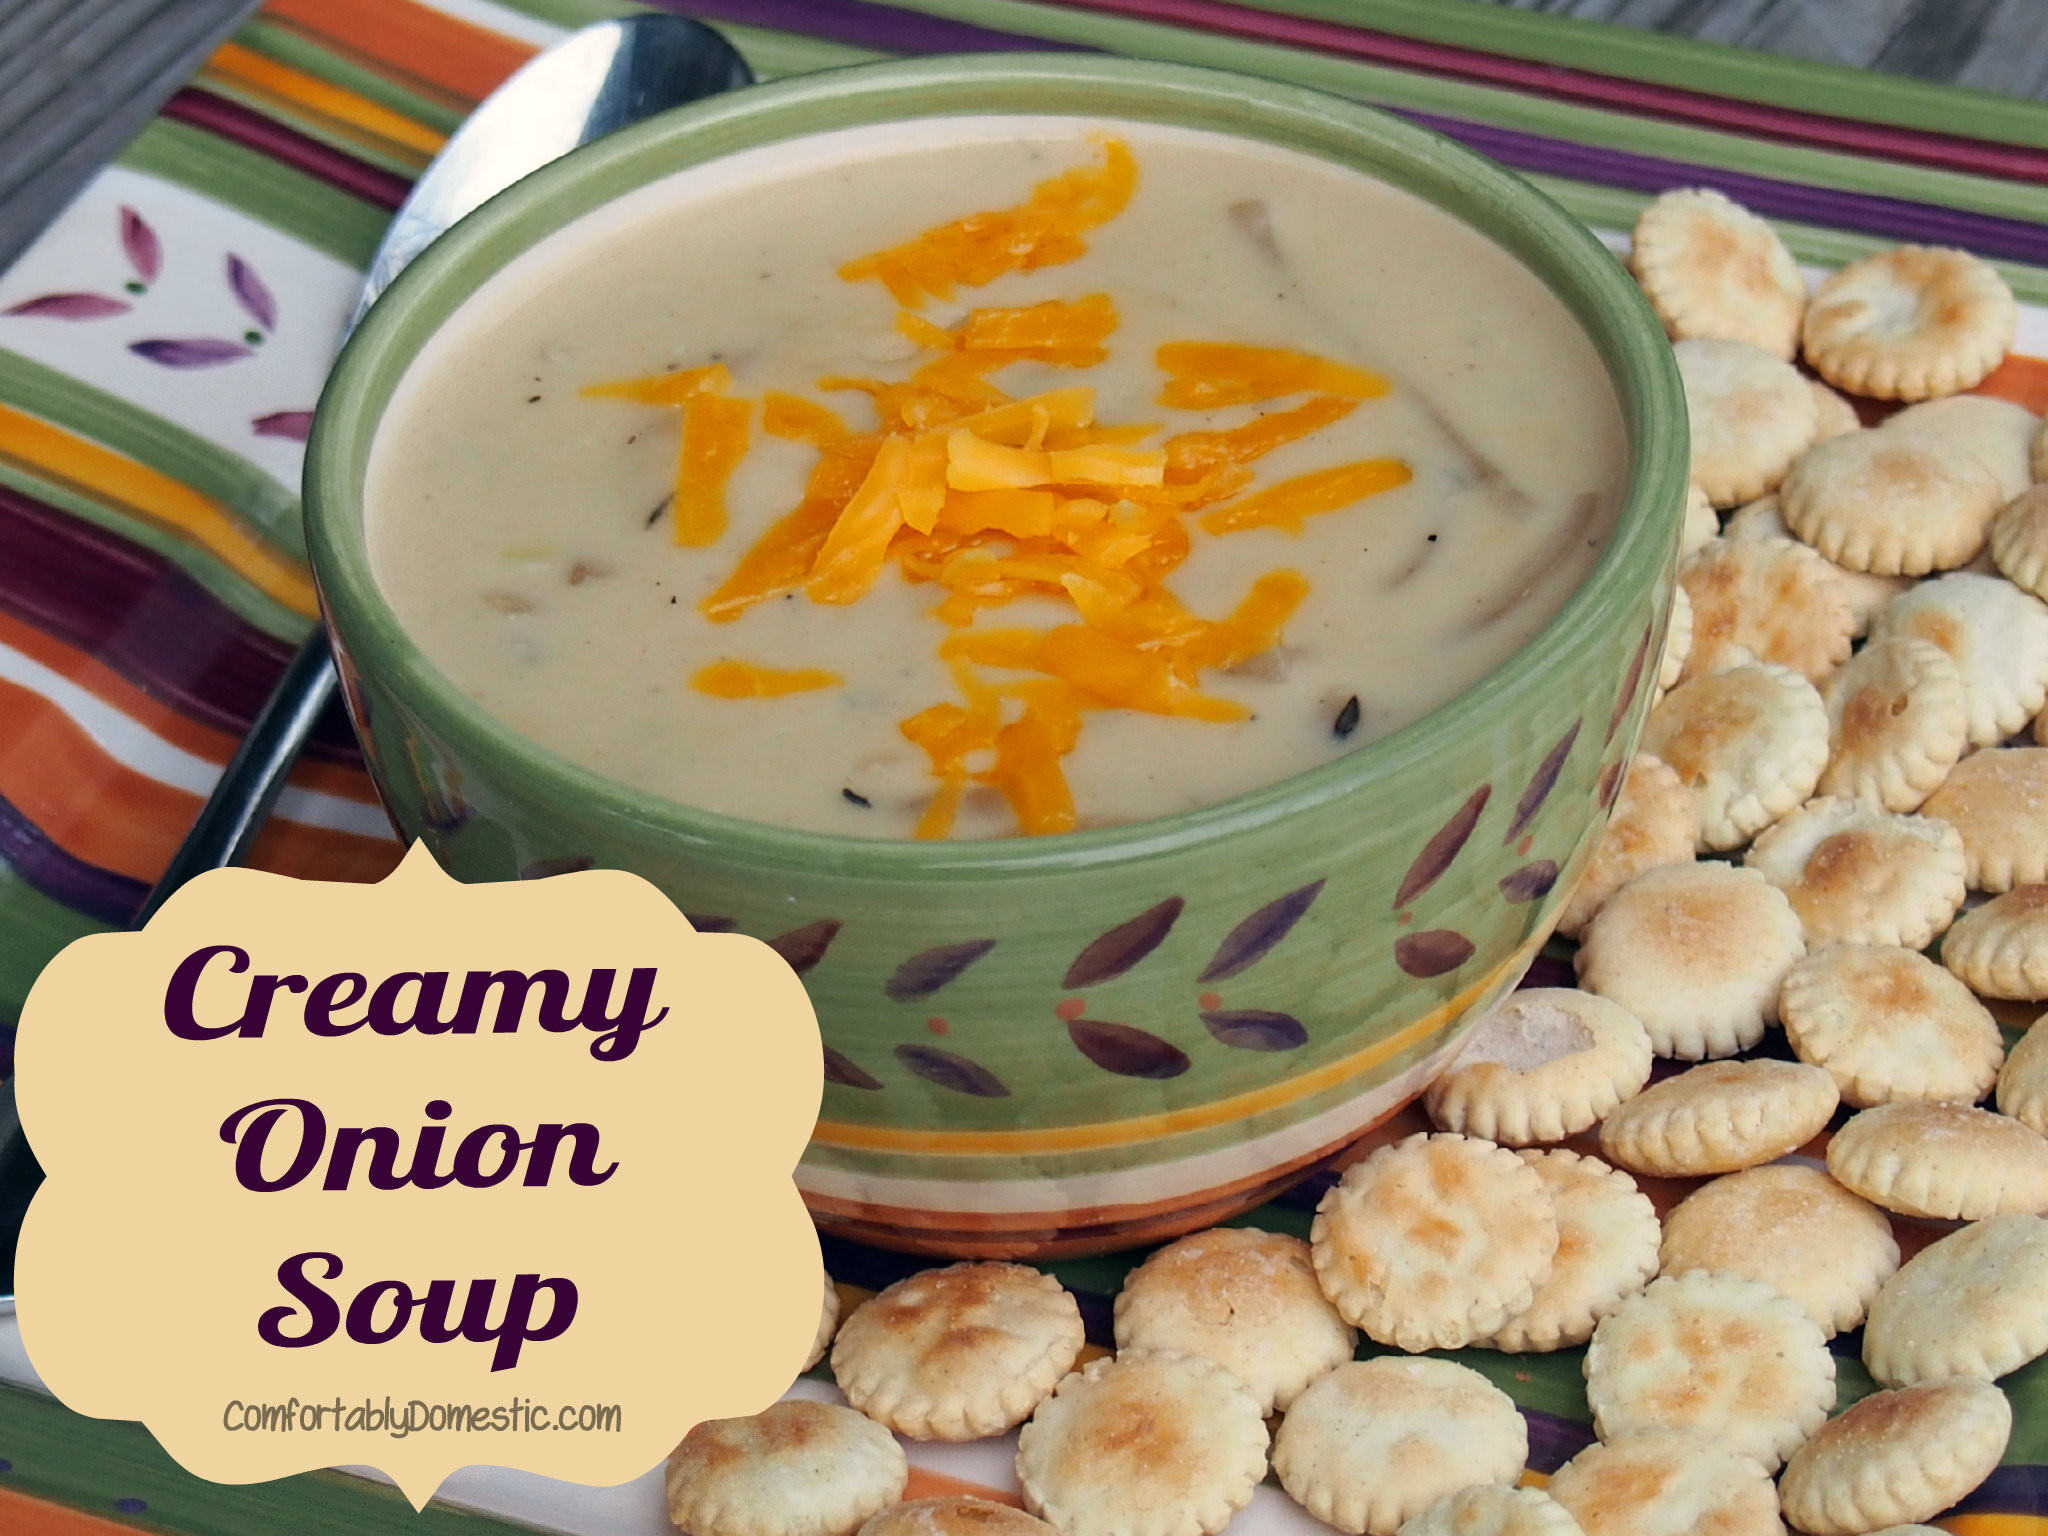 Creamy onion soup has loads of tender sweet onions, swimming in a flavorful, blended cheese base. This soup is a soothing meal or side dish. | ComfortablyDomestic.com